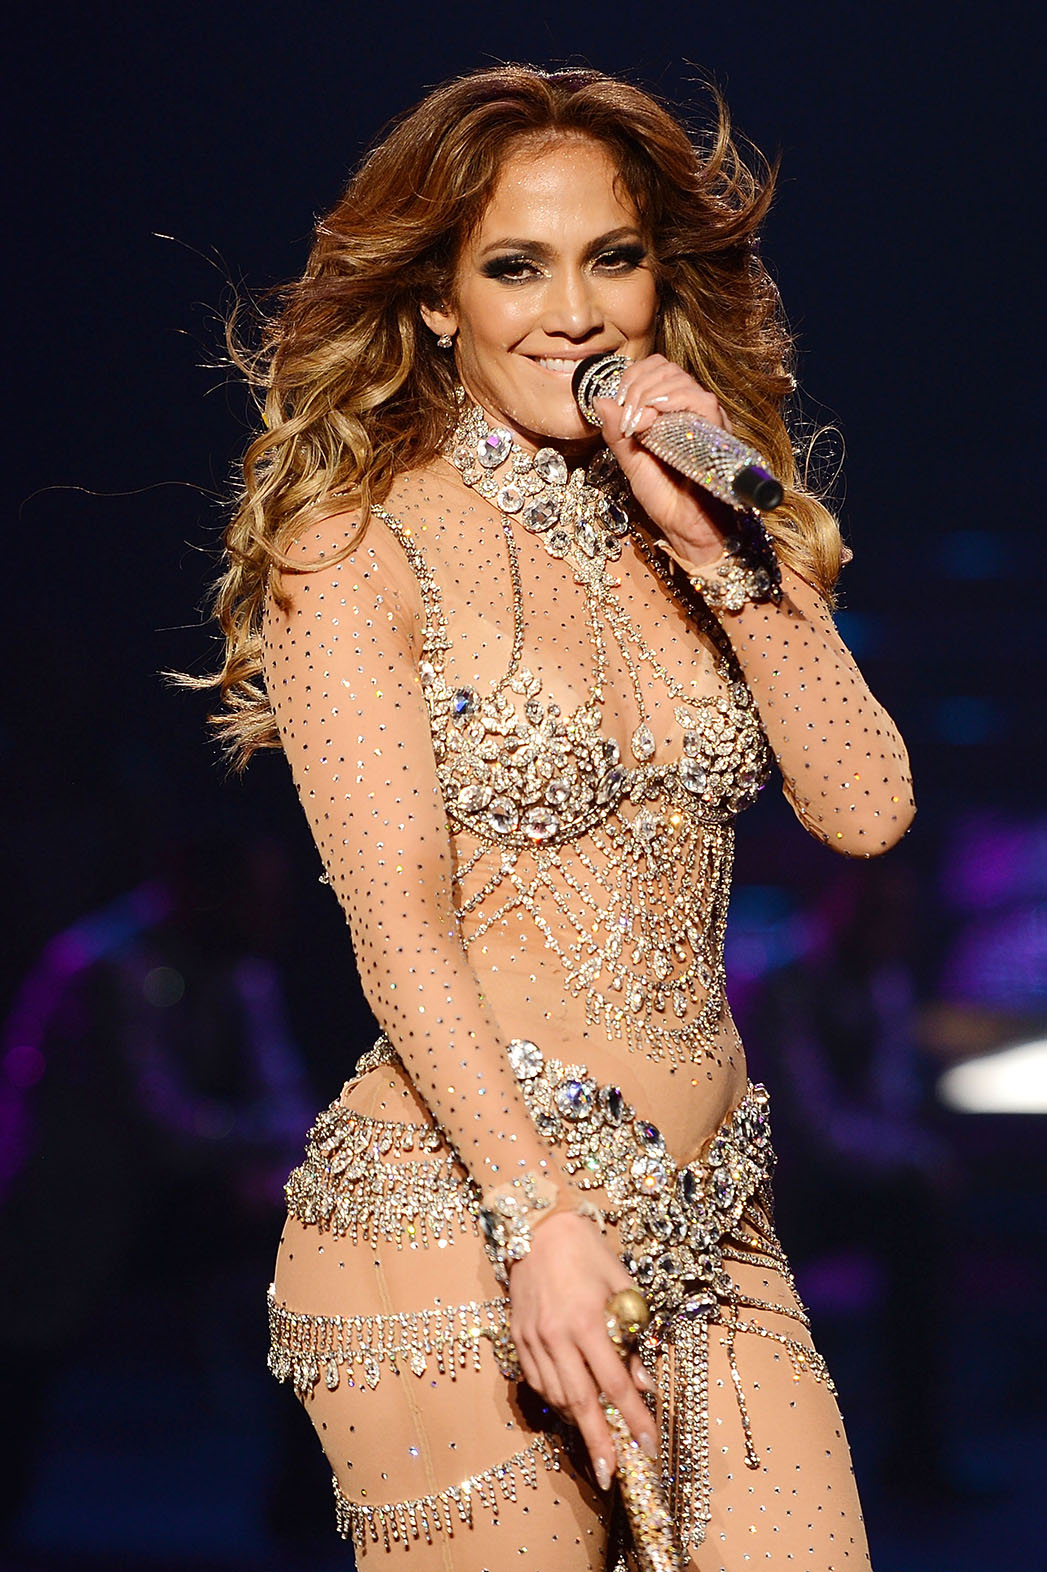 Jennifer Lopez  performs at show JENNIFER LOPEZ: ALL I HAVE  - P 2016